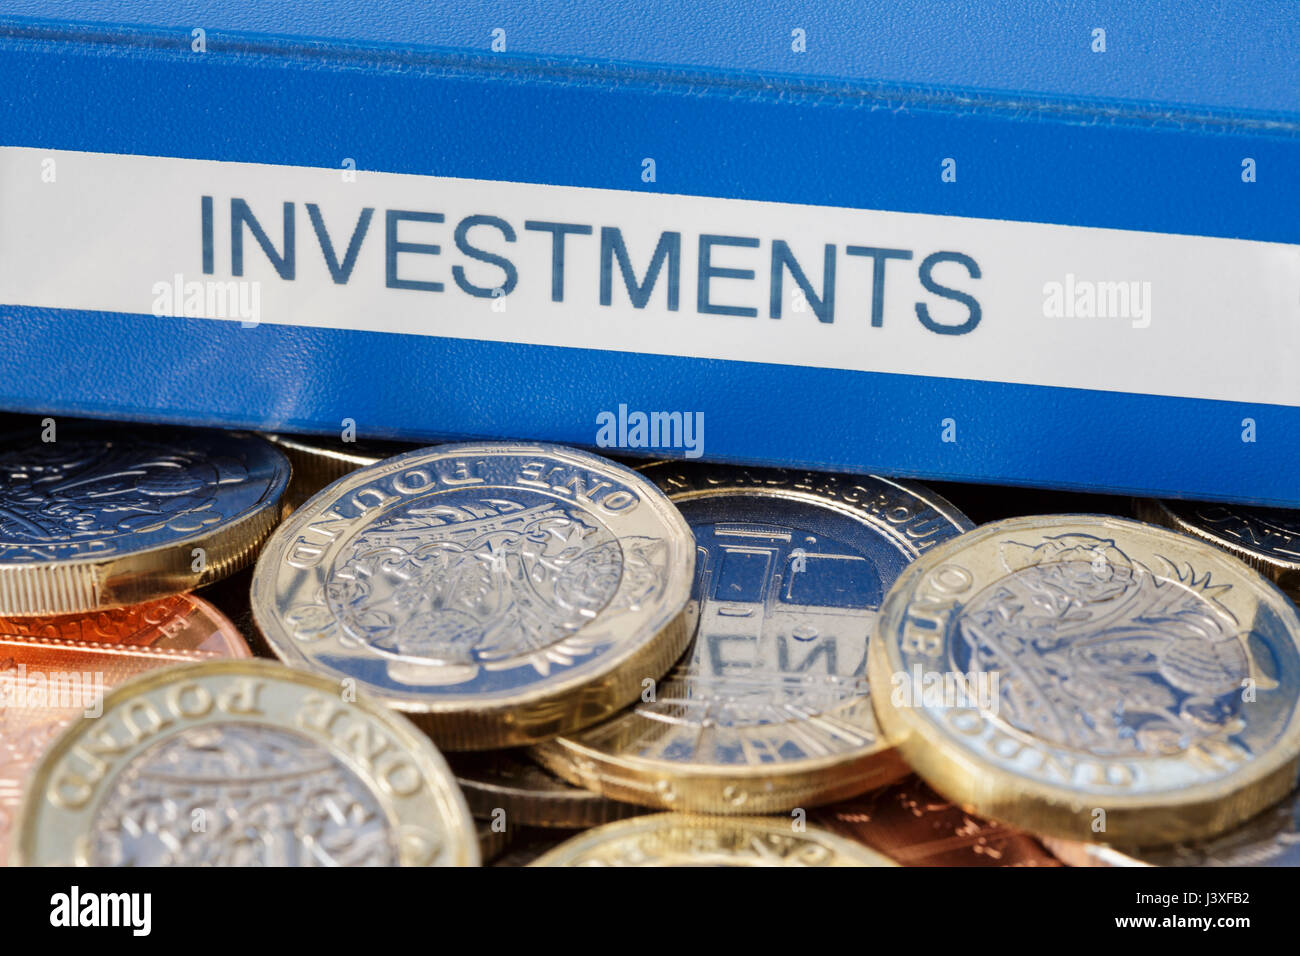 Investments portfolio on English pounds £ sterling money new pound coins GBP cash to illustrate investing and saving Stock Photo